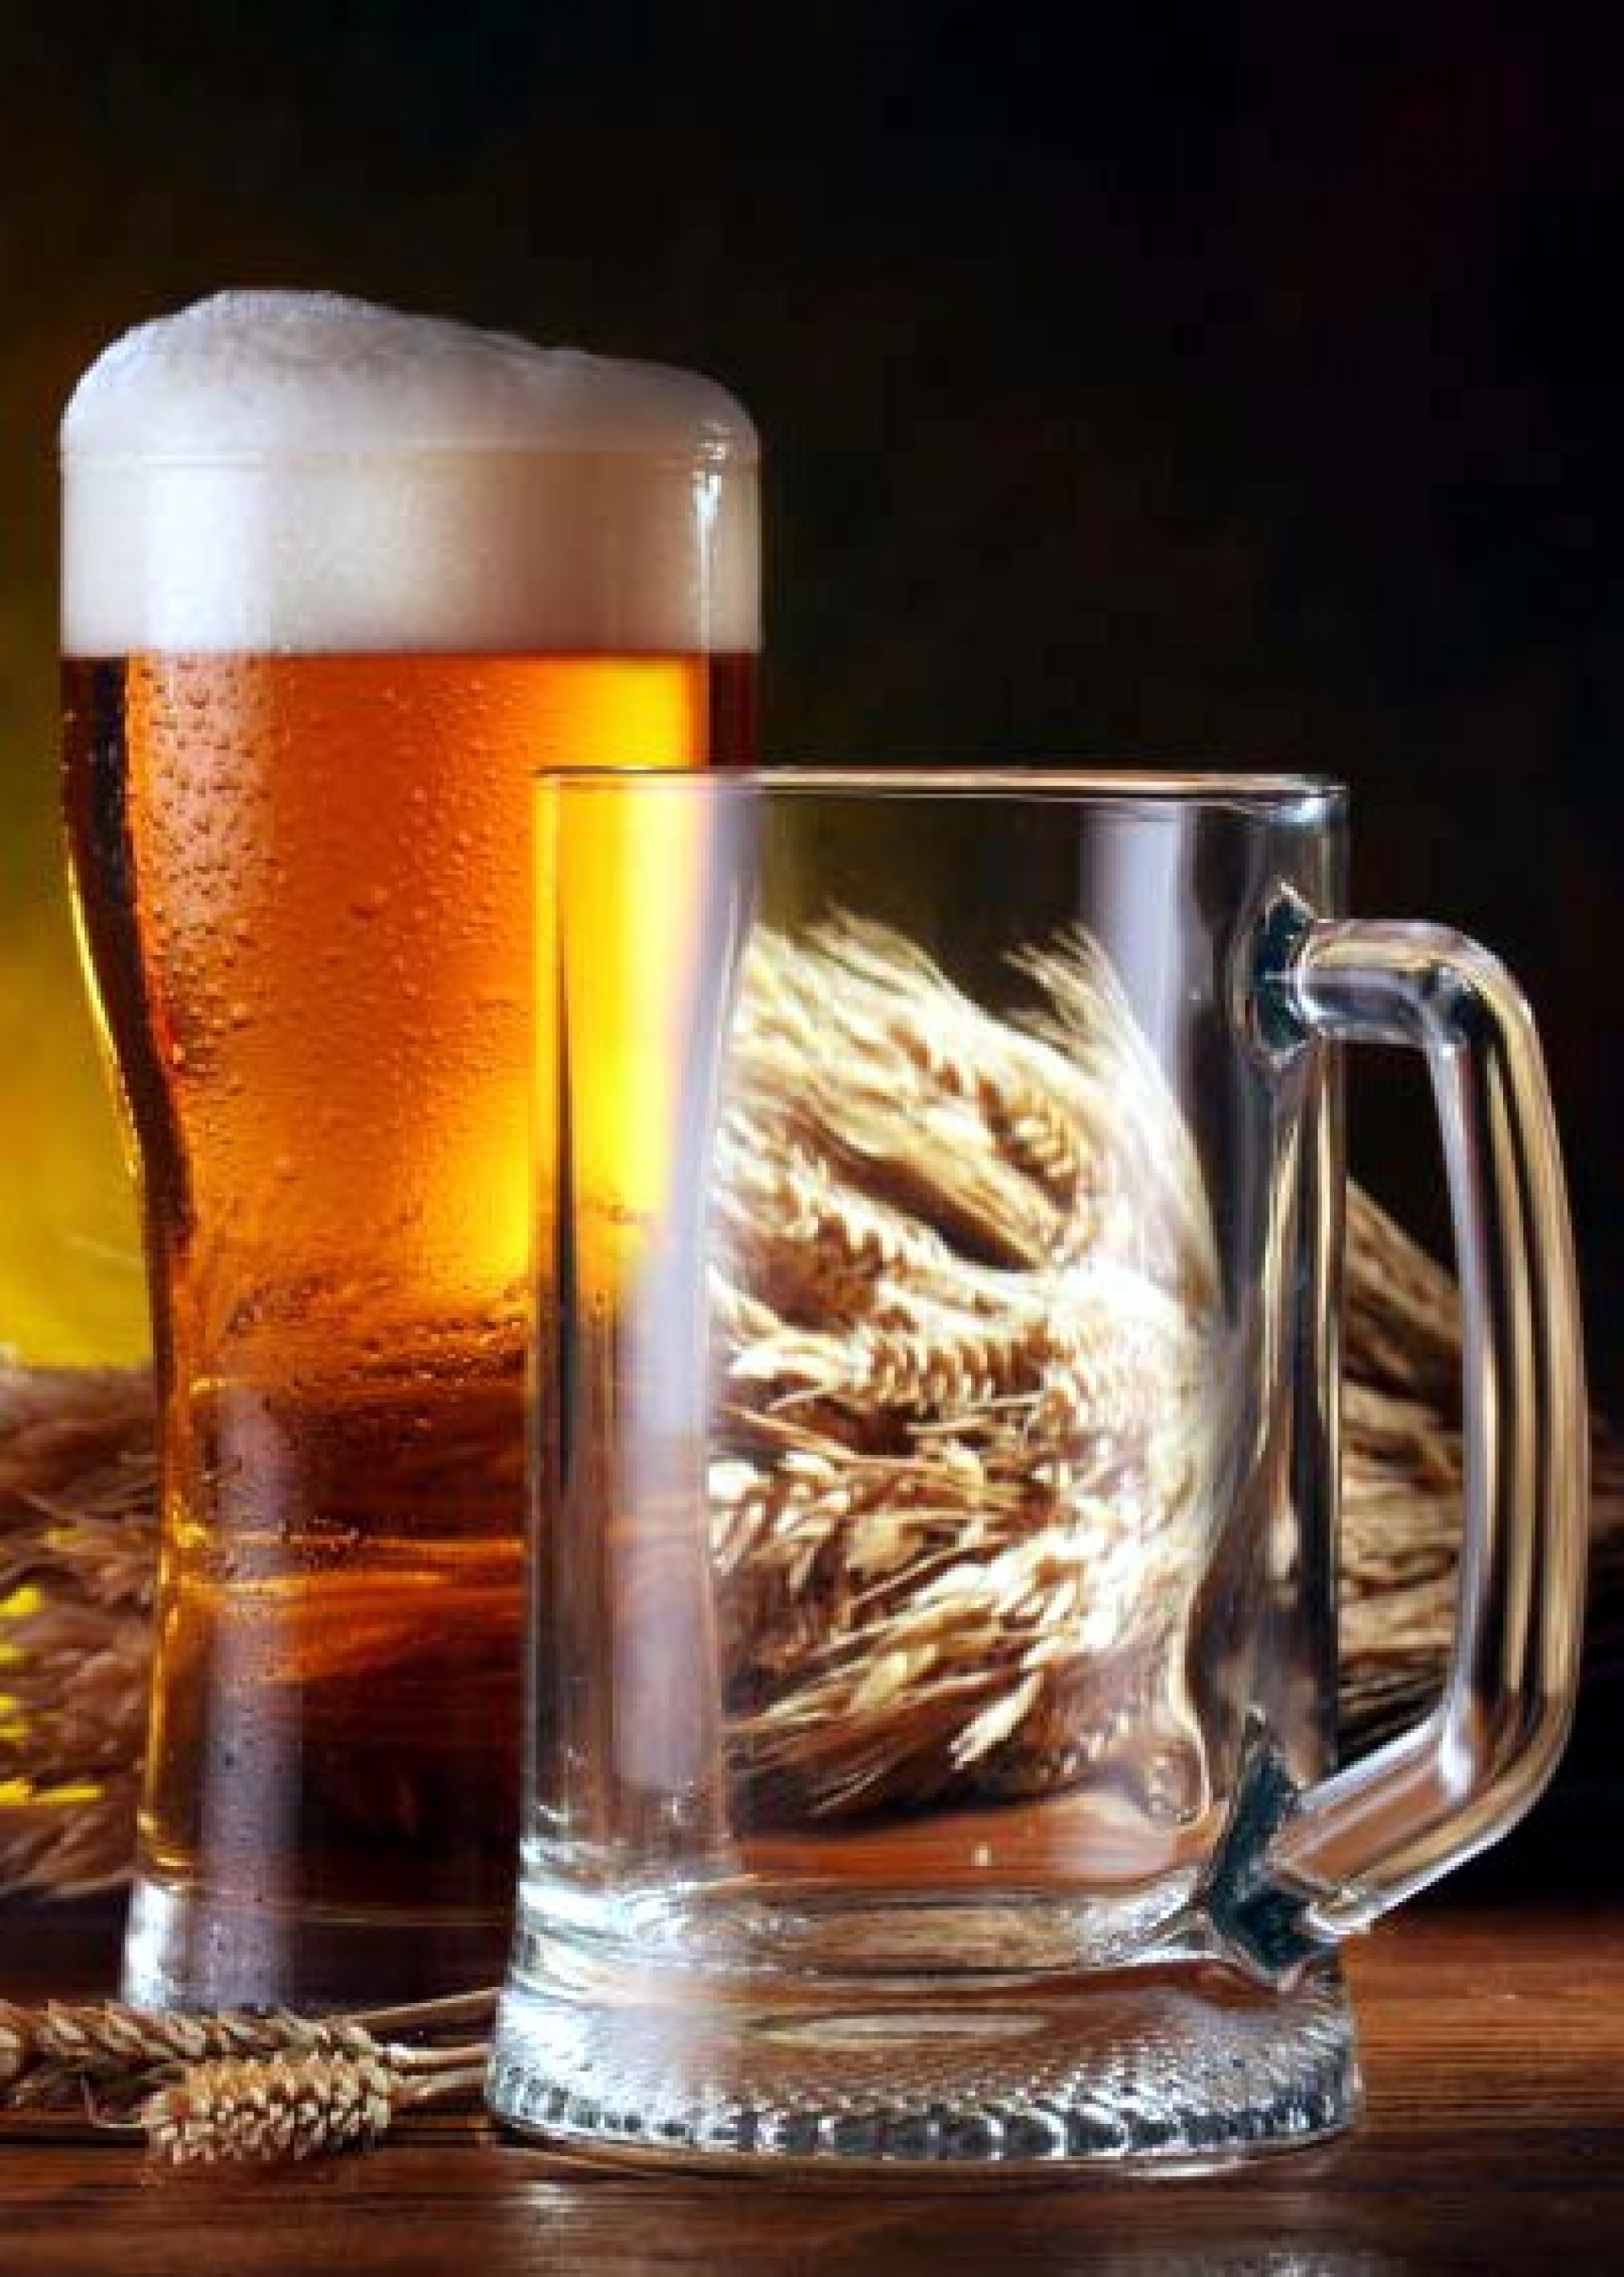 Beer and glass